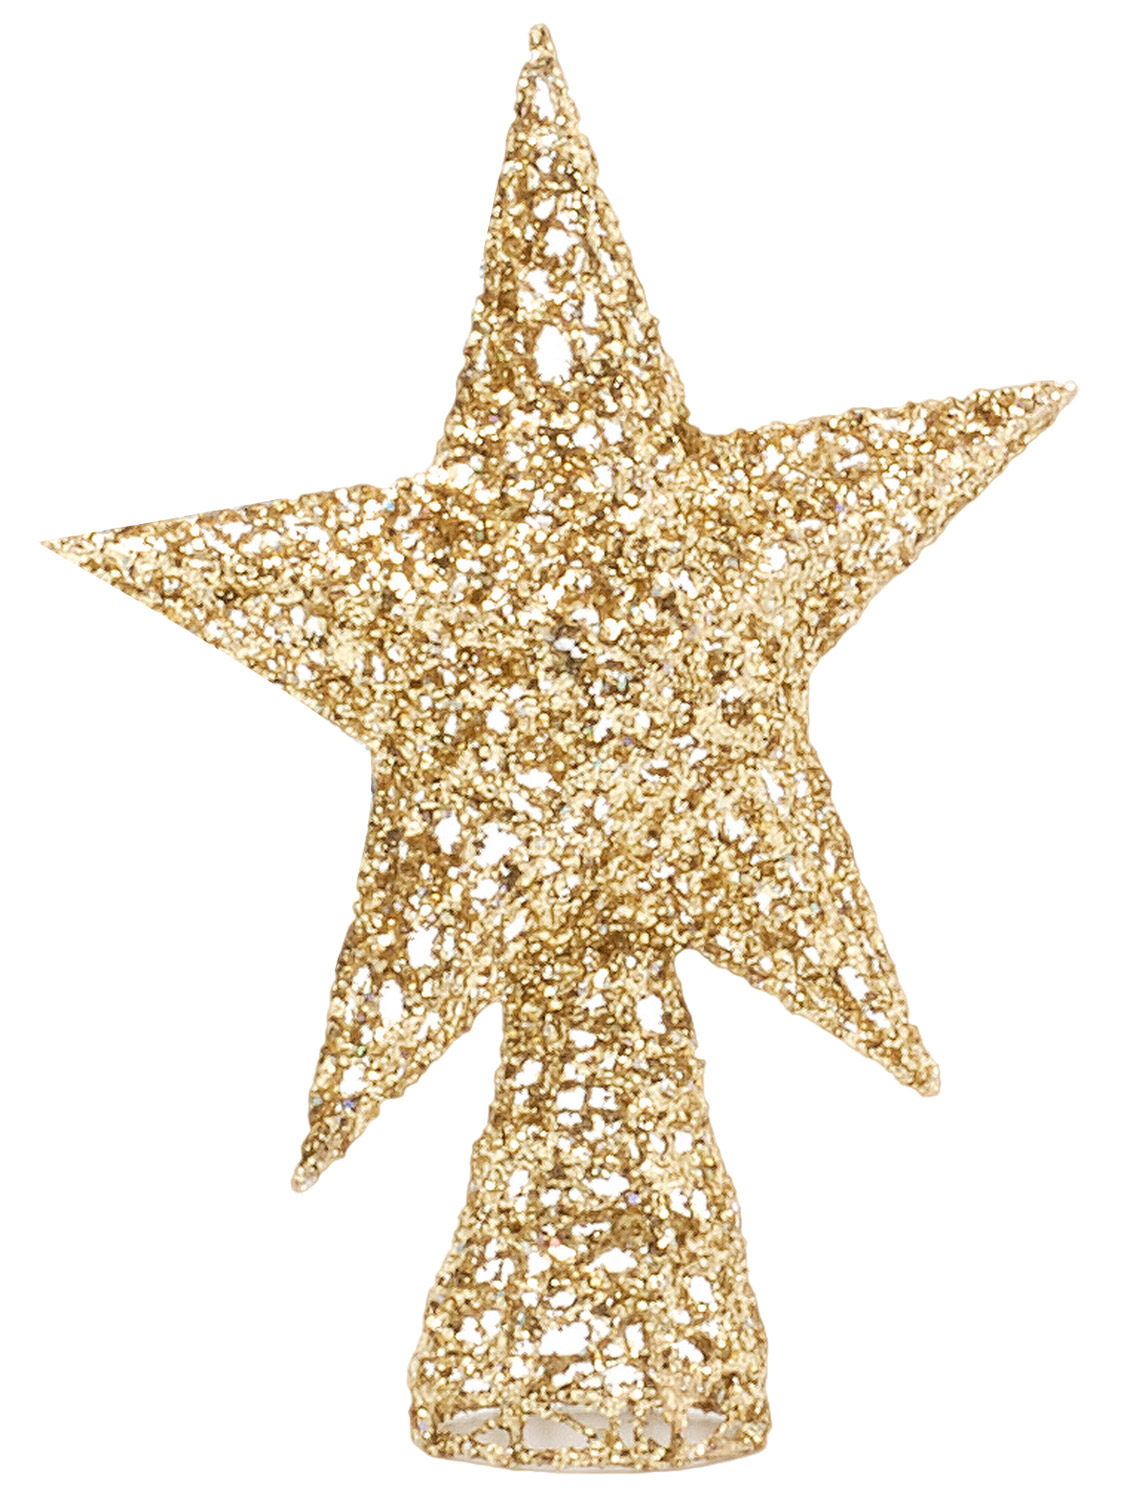 Details About Star Christmas Tree Topper Glitter Gold Silver Xmas Decoration 25cm Traditional